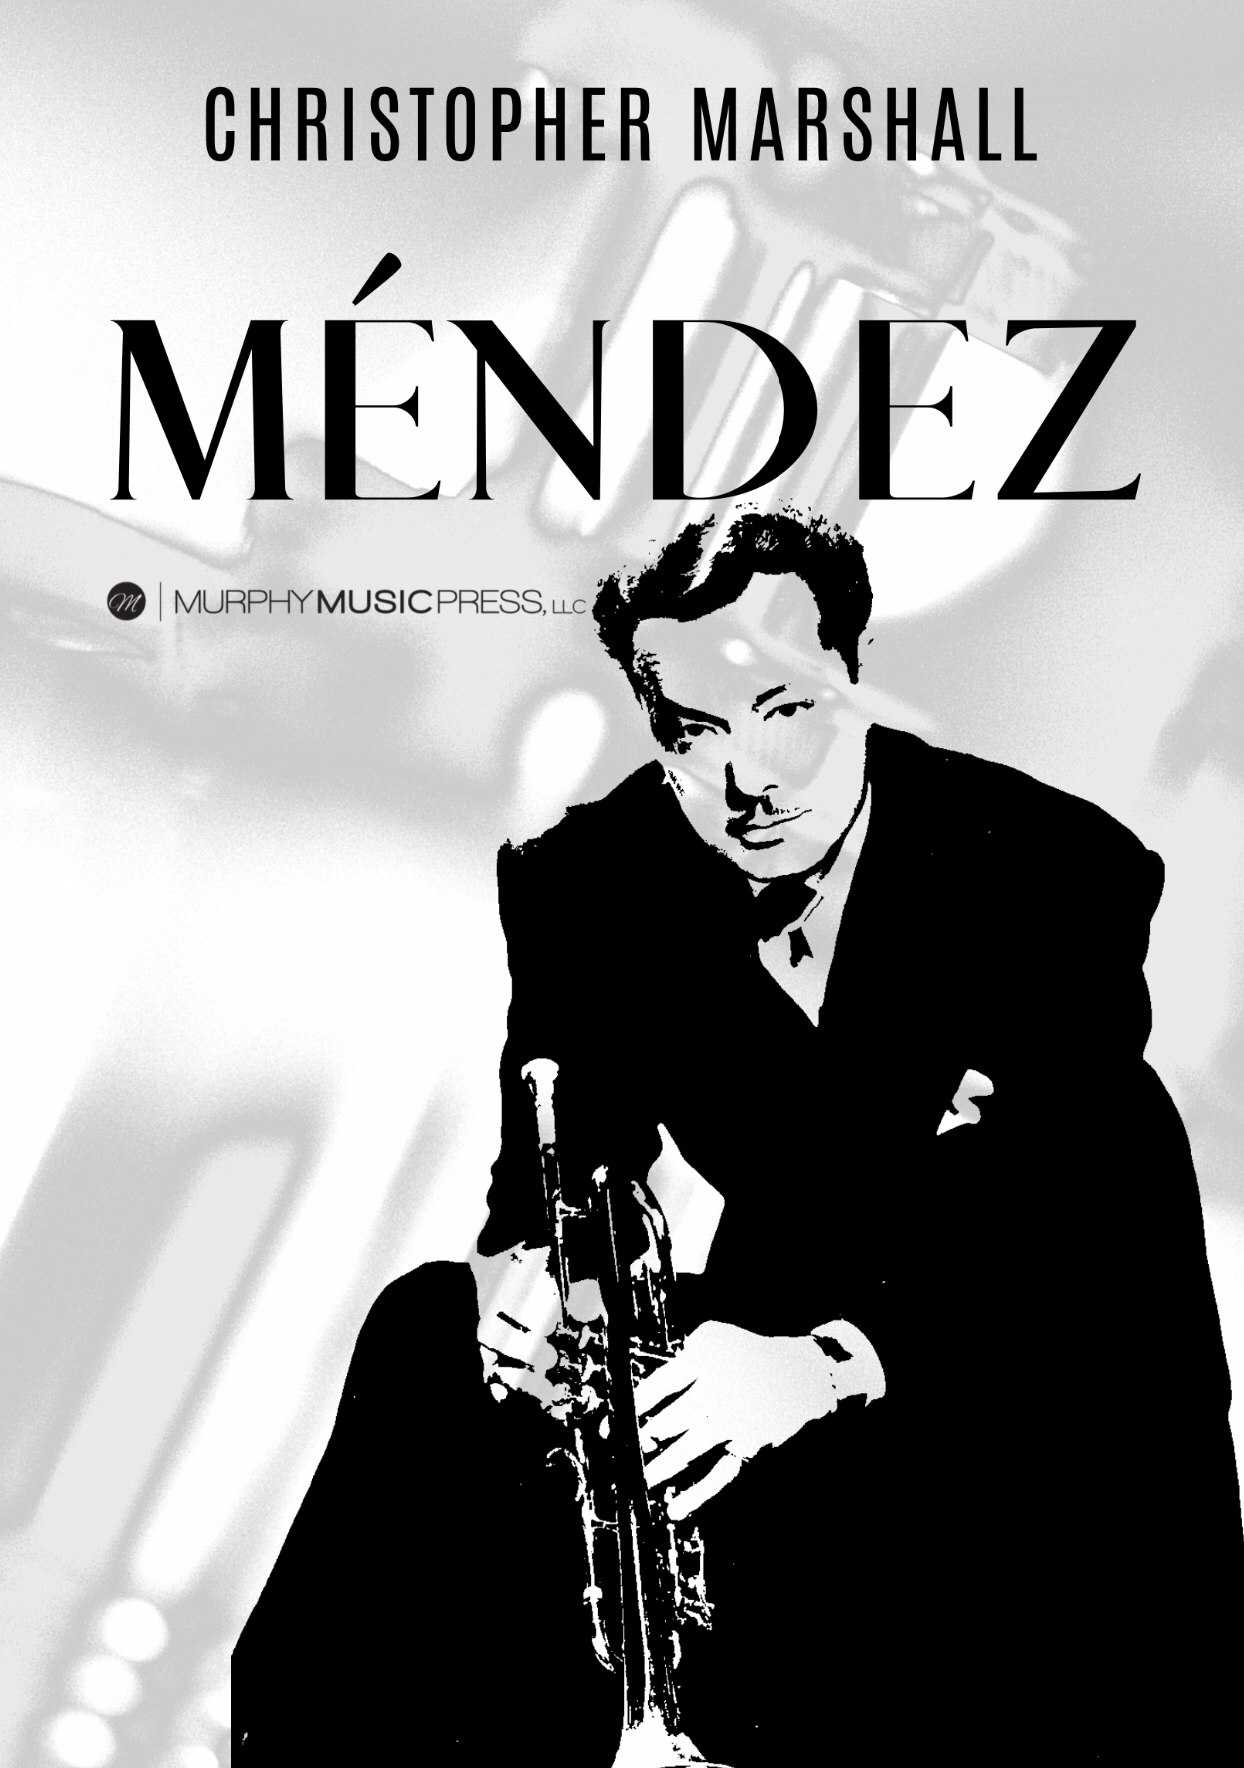 Mendez by Christopher Marshall